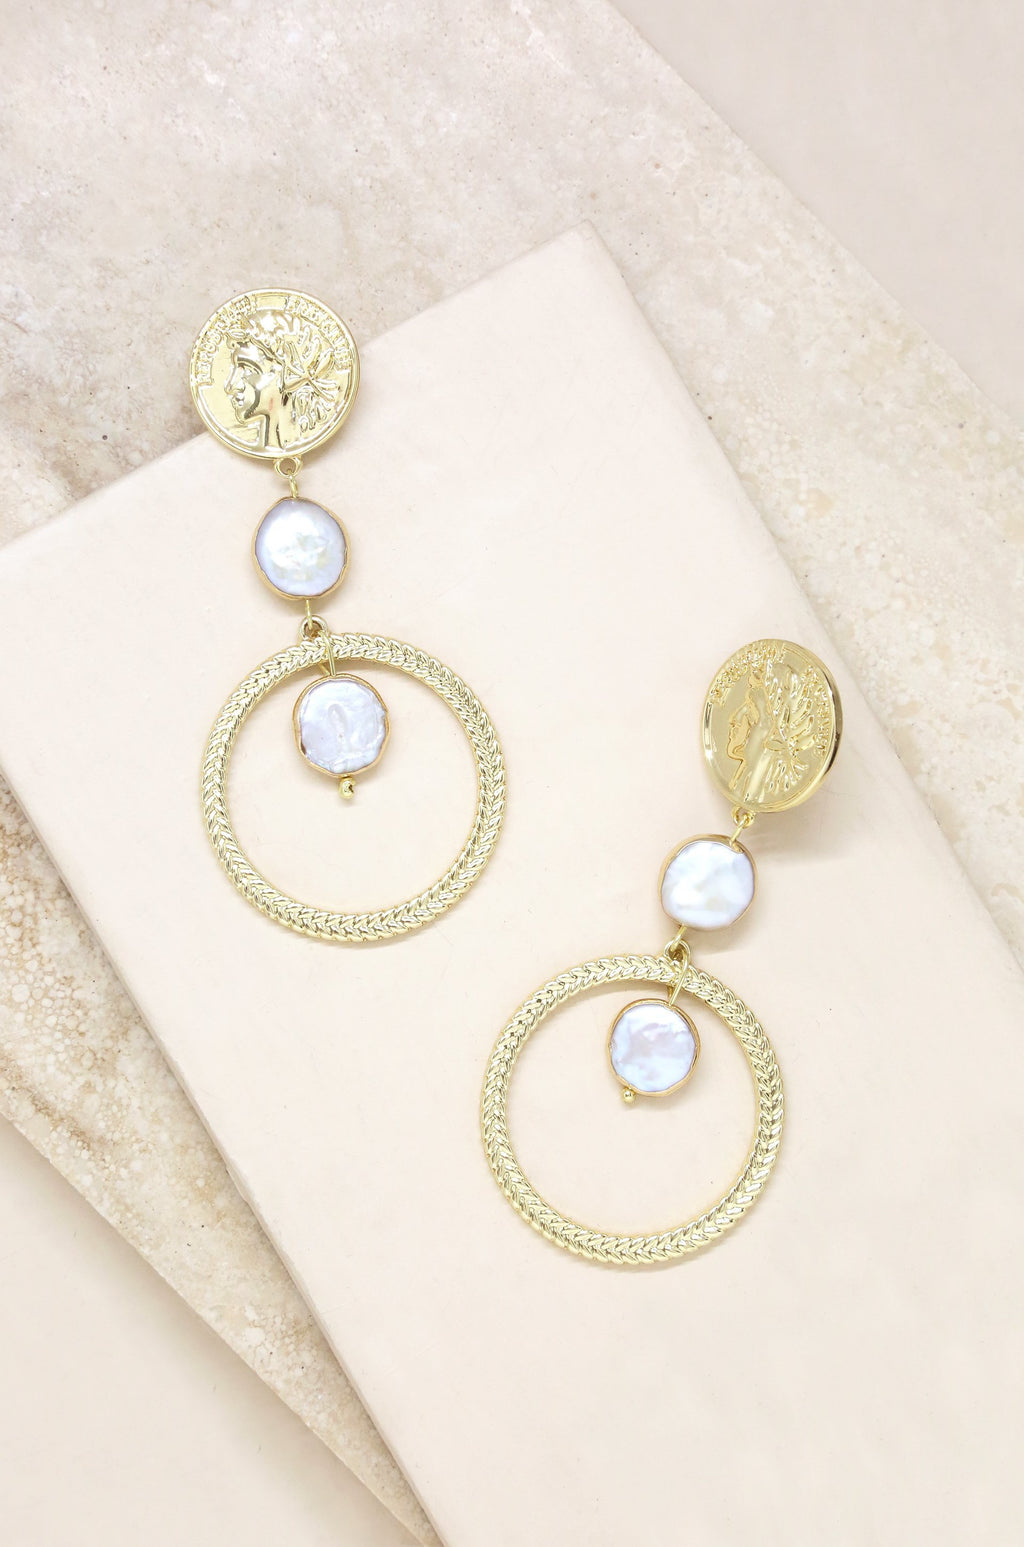 'Your Majesty' Coin Drop Earrings